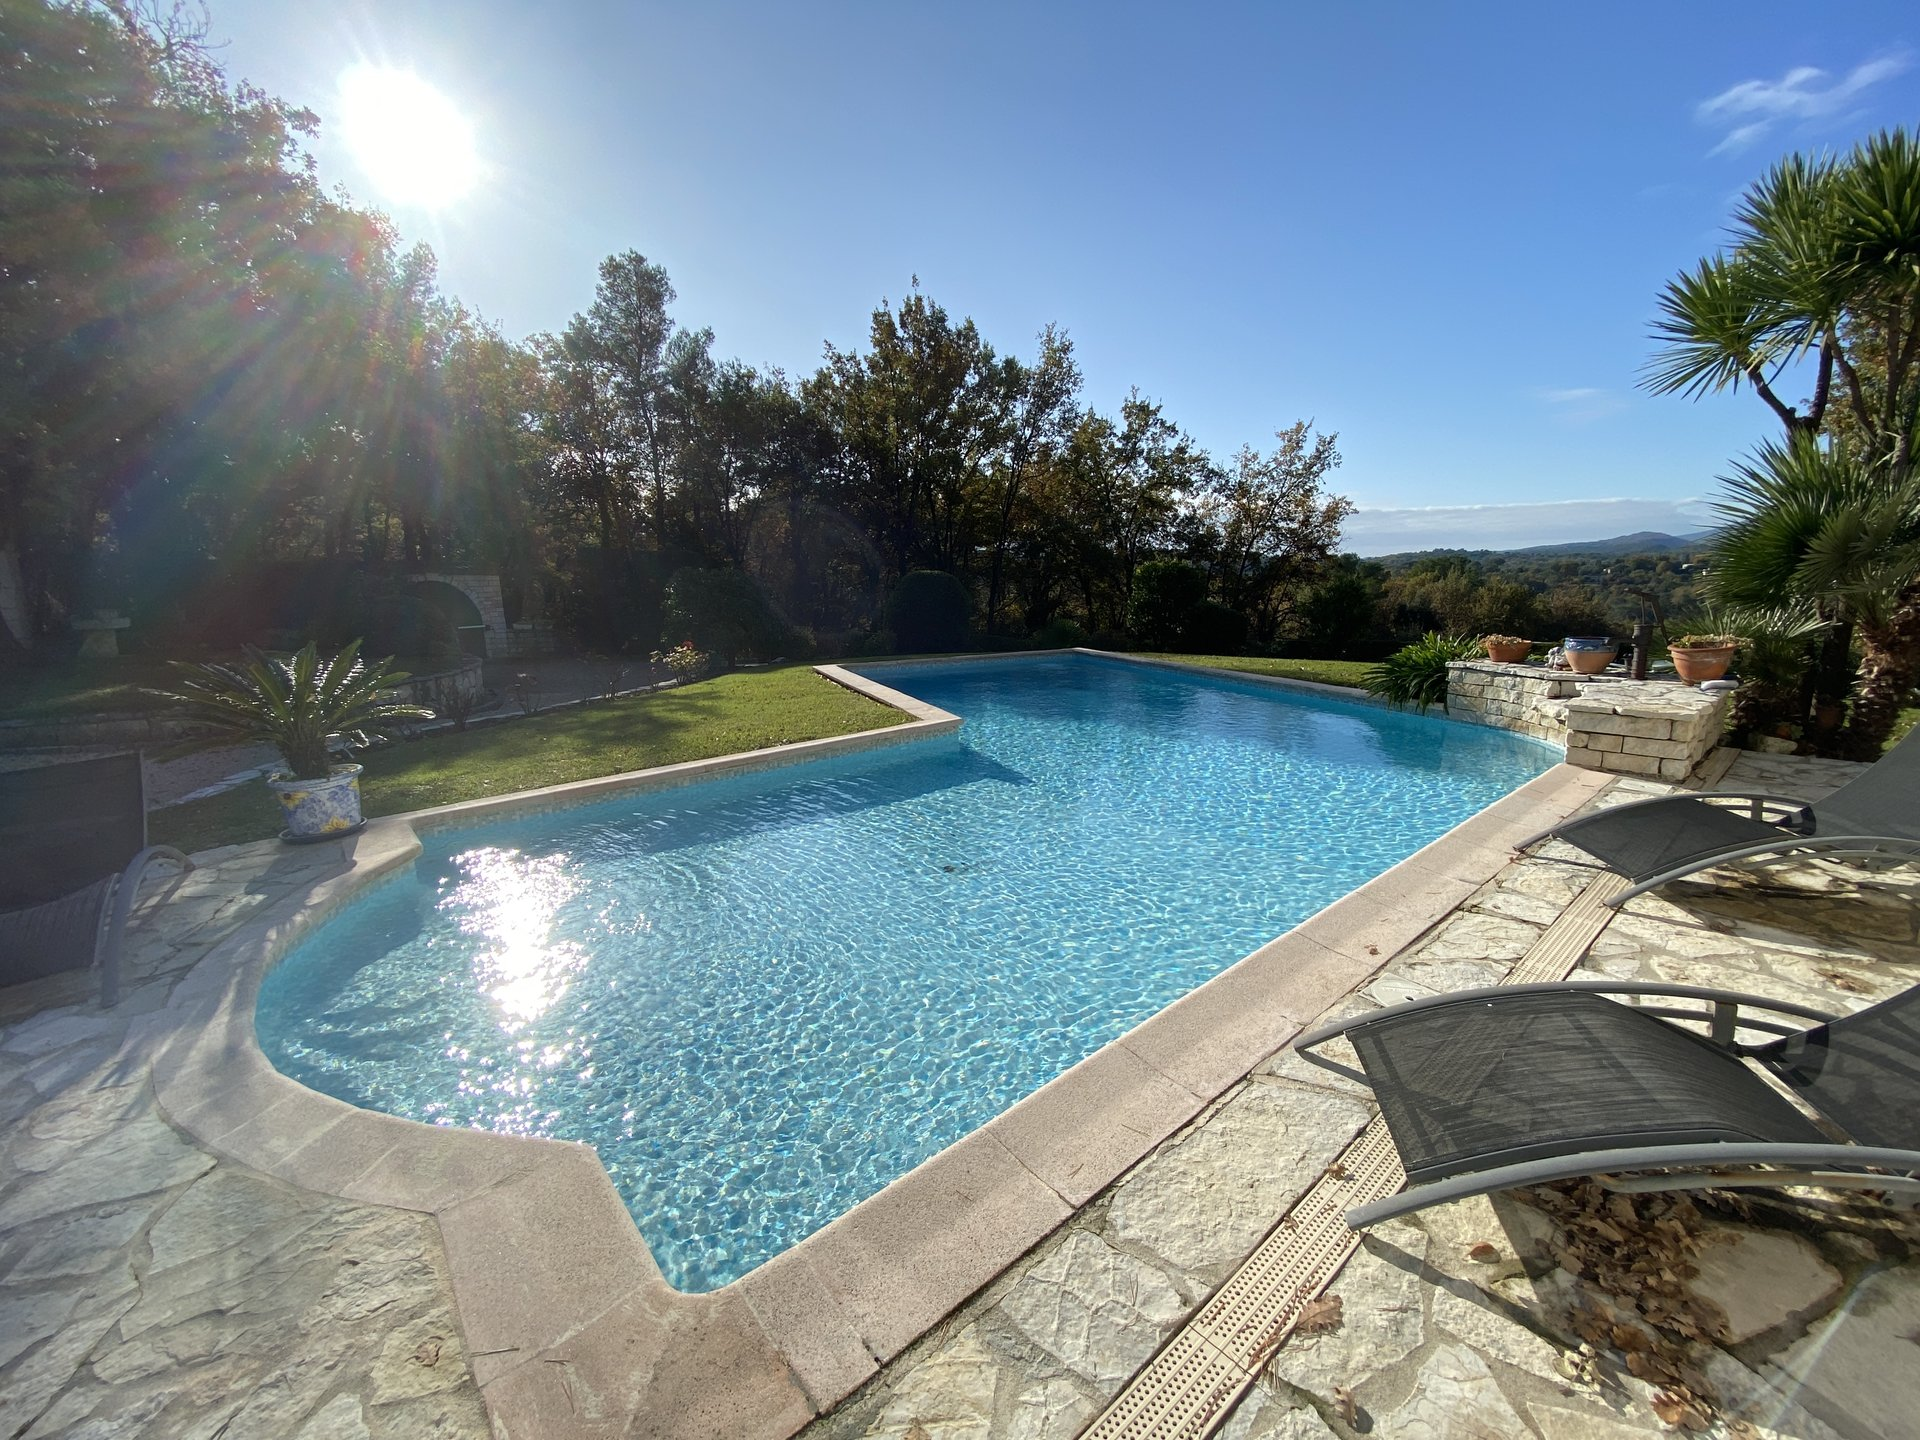 For sale villa 233 sqm in Vence, swimming pool,  flat ground 2500 sqm